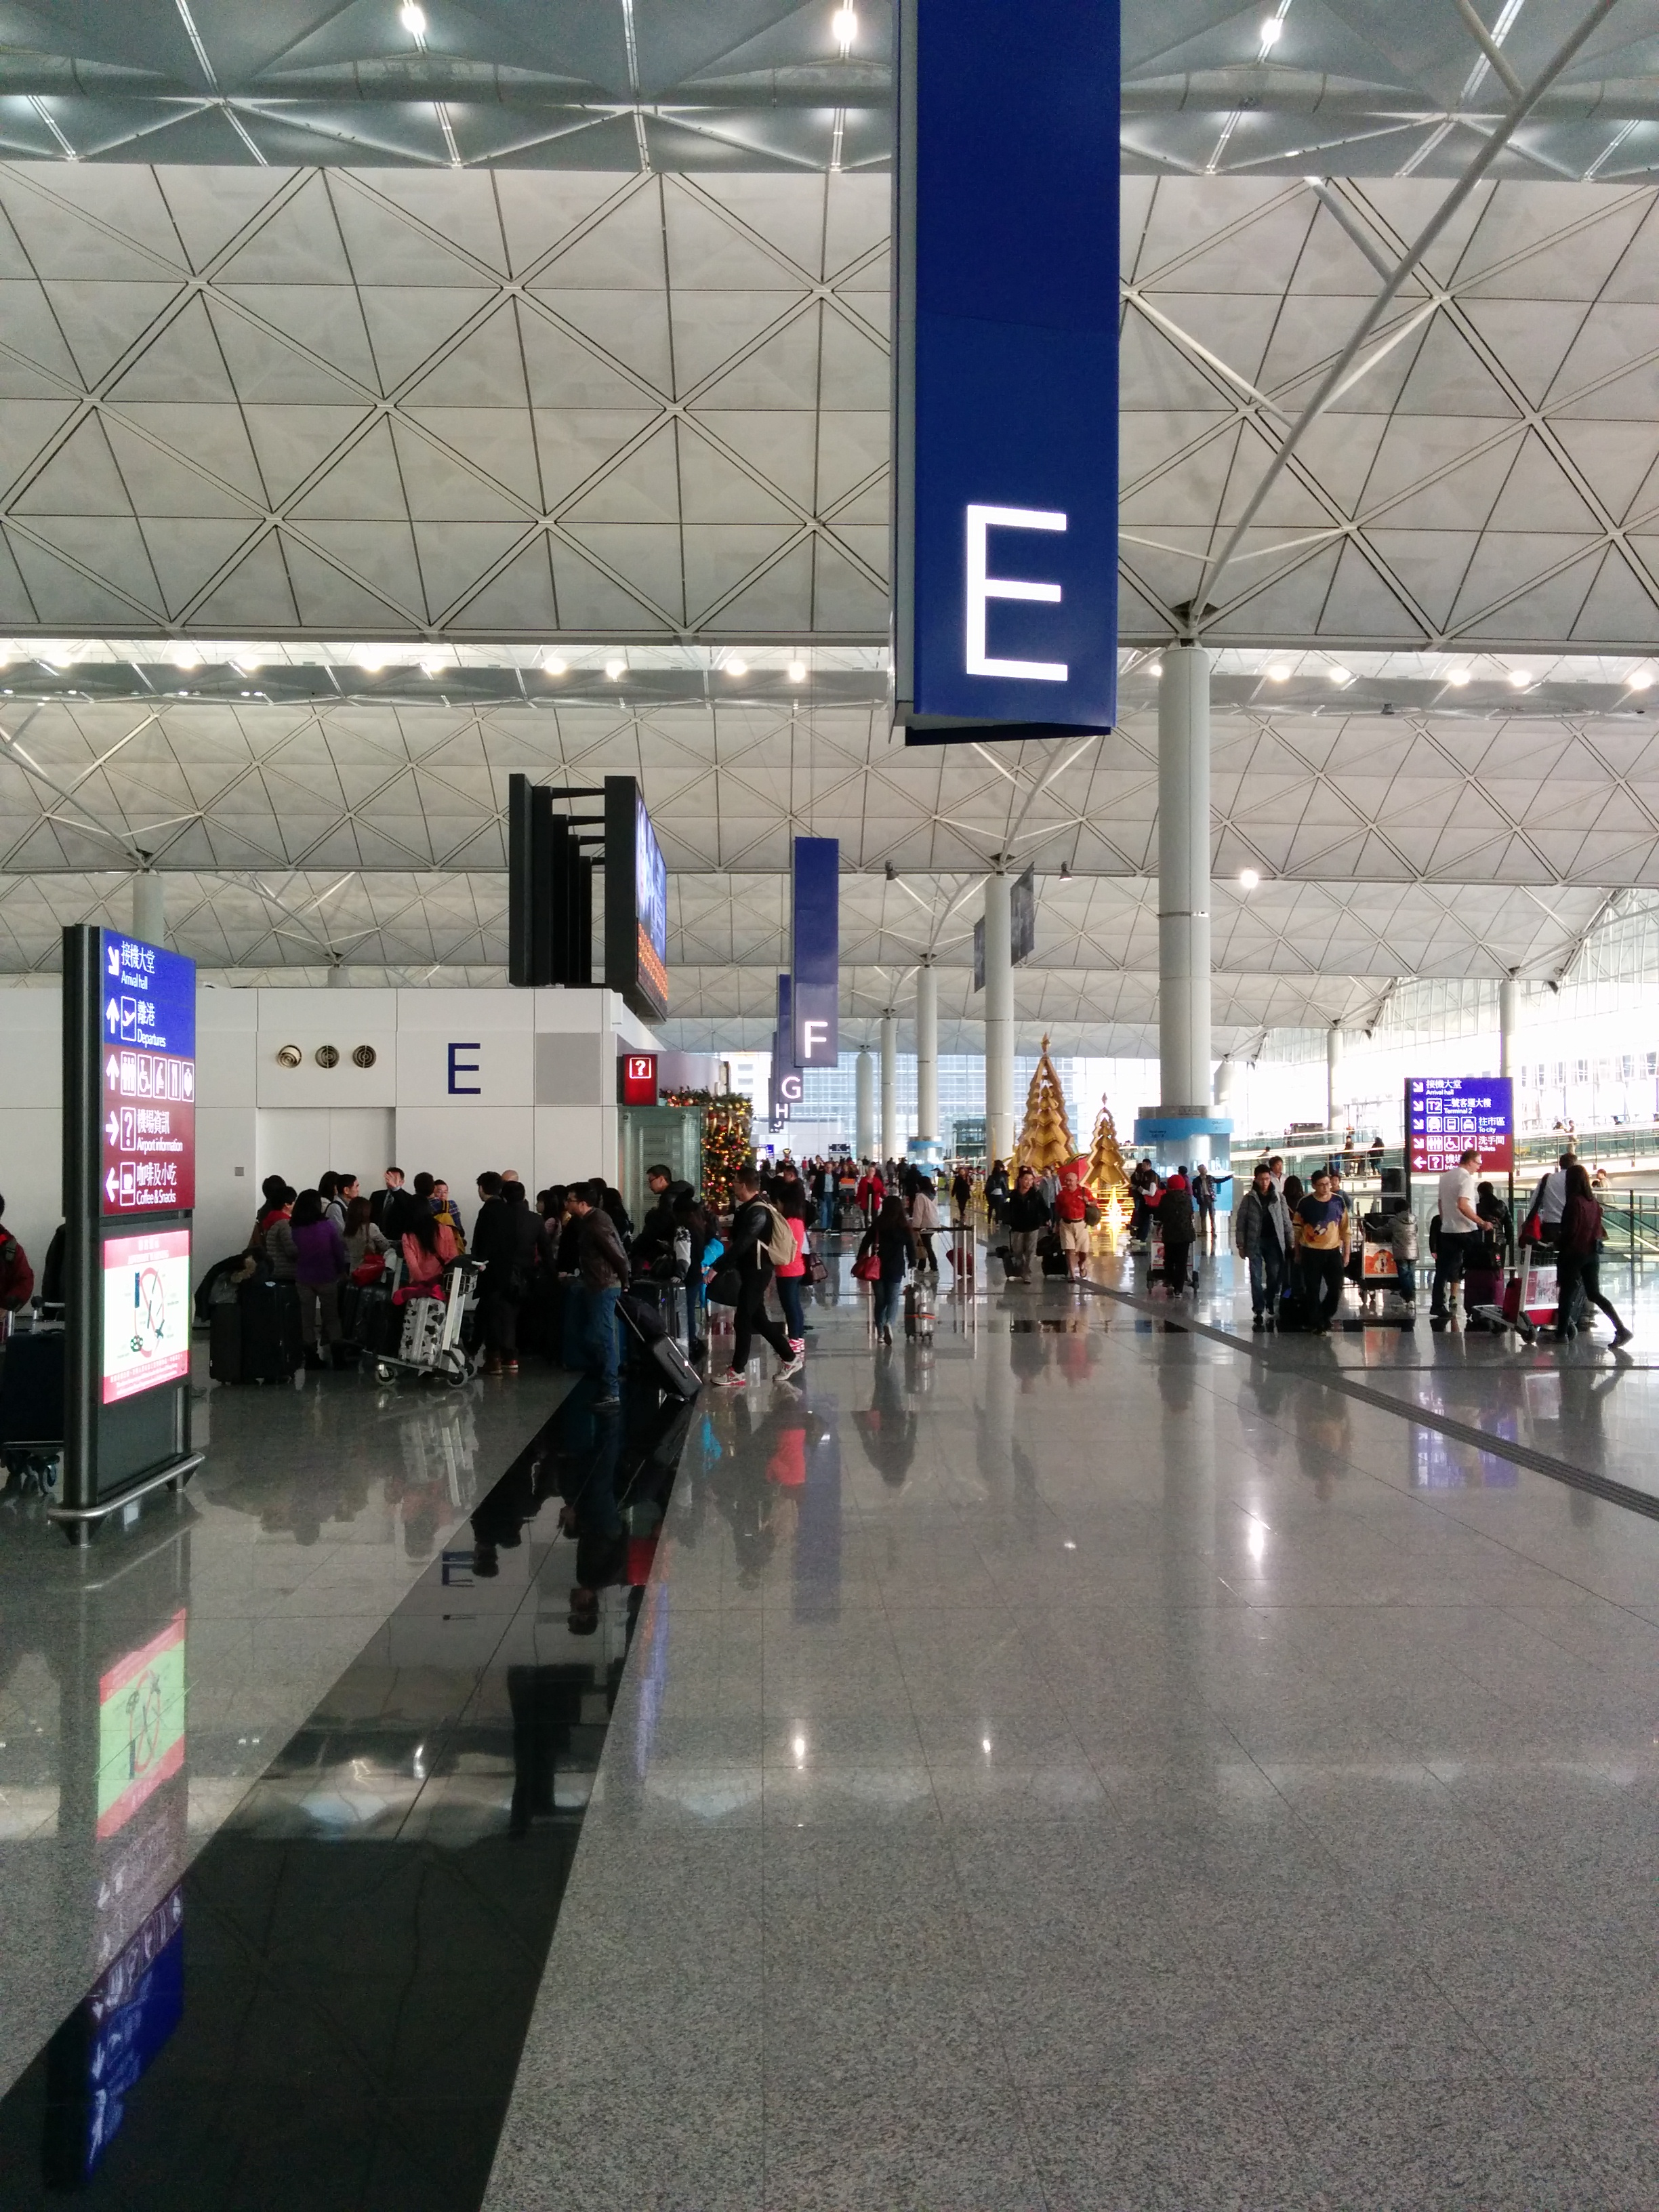 Airport Arrival Hall